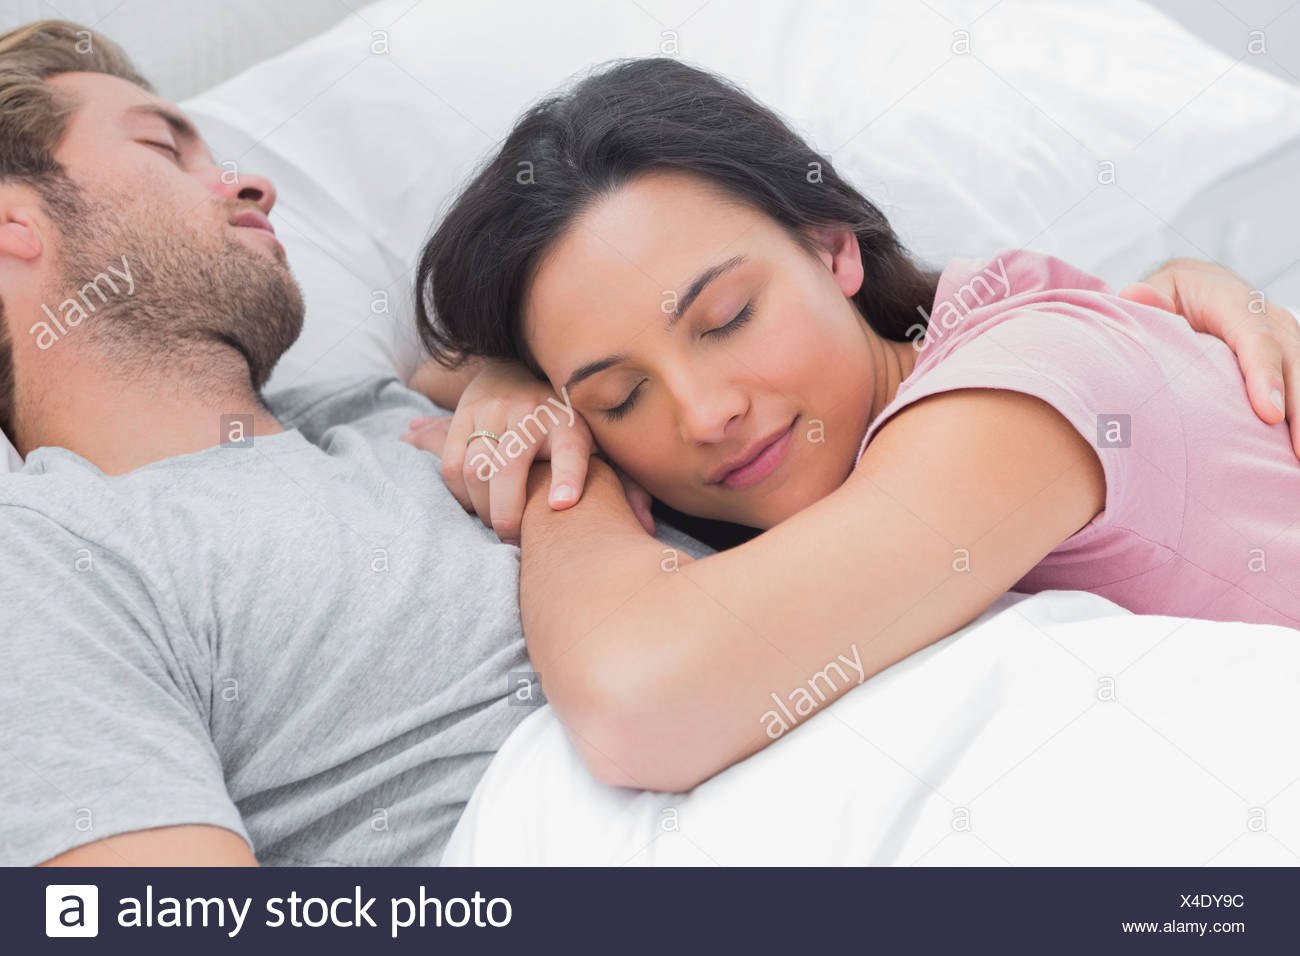 Woman sleeping on her husbands chest - Stock Image